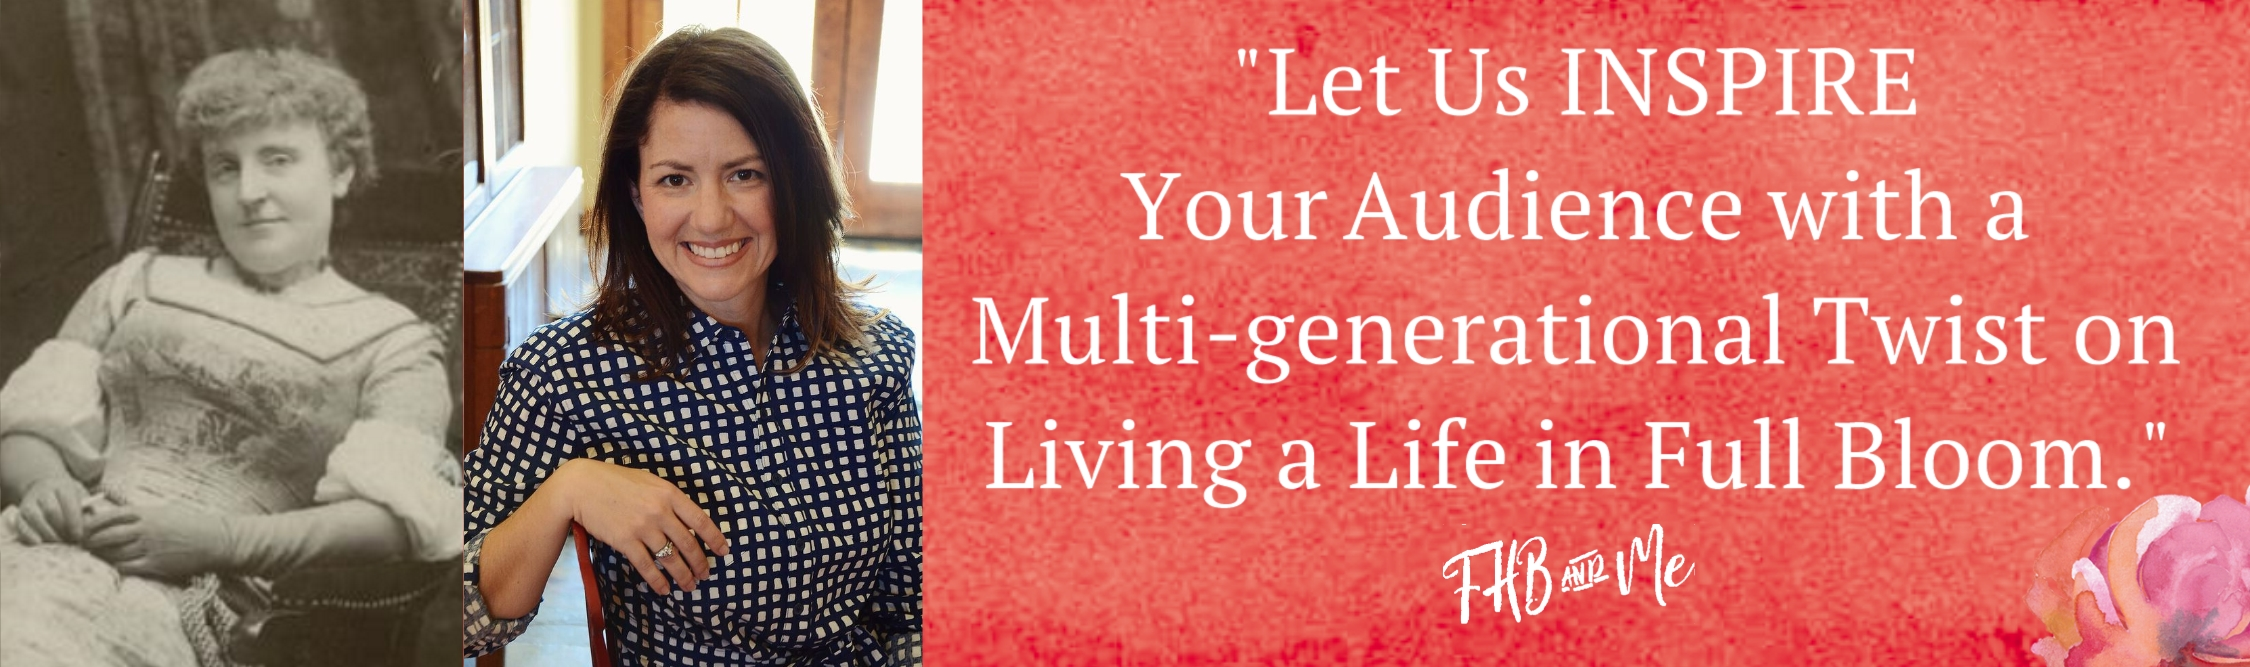 Let us INSPIRE Your Audience with a Multi-generational twist on living a life in full bloom.